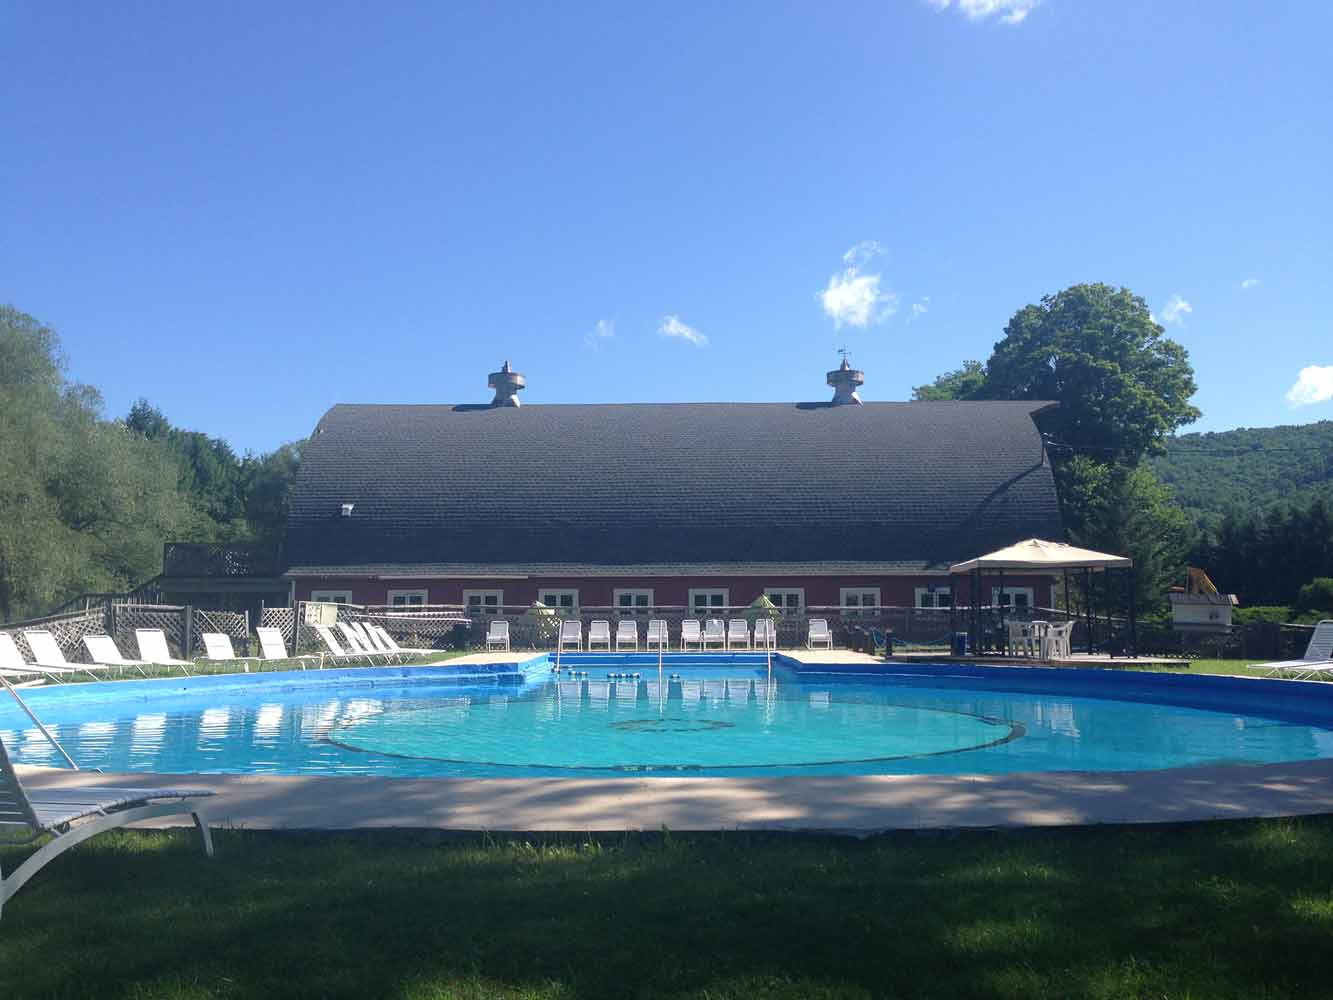 large round built in pool with chaise lounges and barn in background at Homestead Farm Resort Margaretville NY